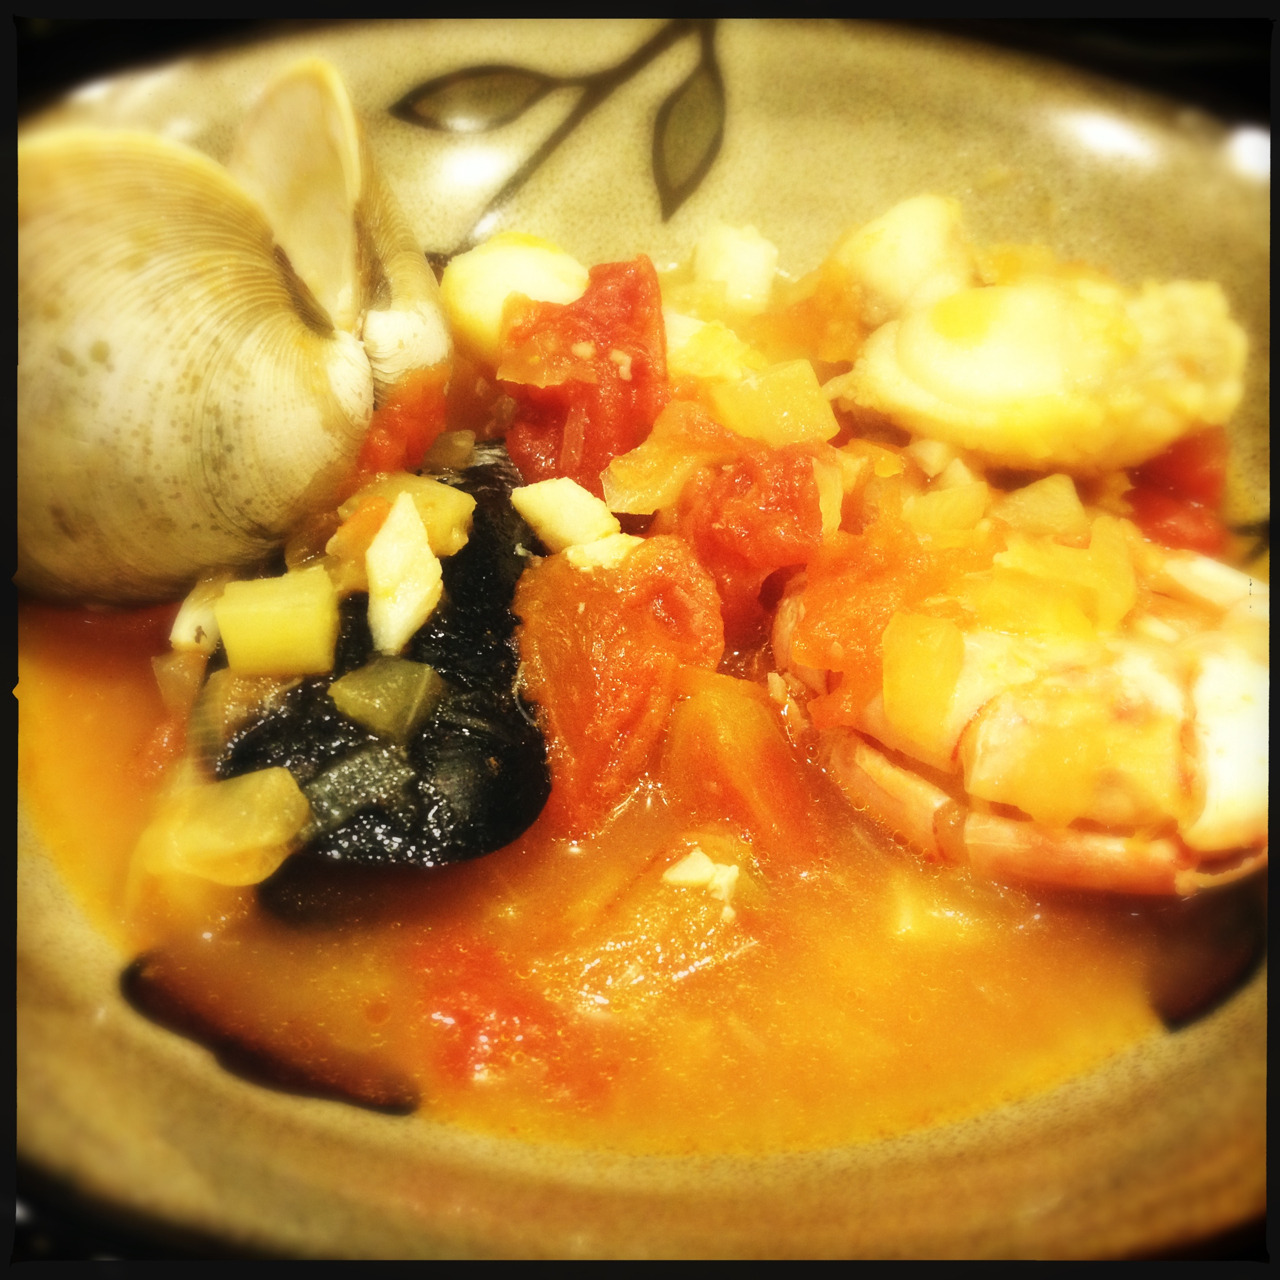 Dinner!  I made Bouillabaisse with shrimp, mussels, monkfish, and cod.   So yummy!